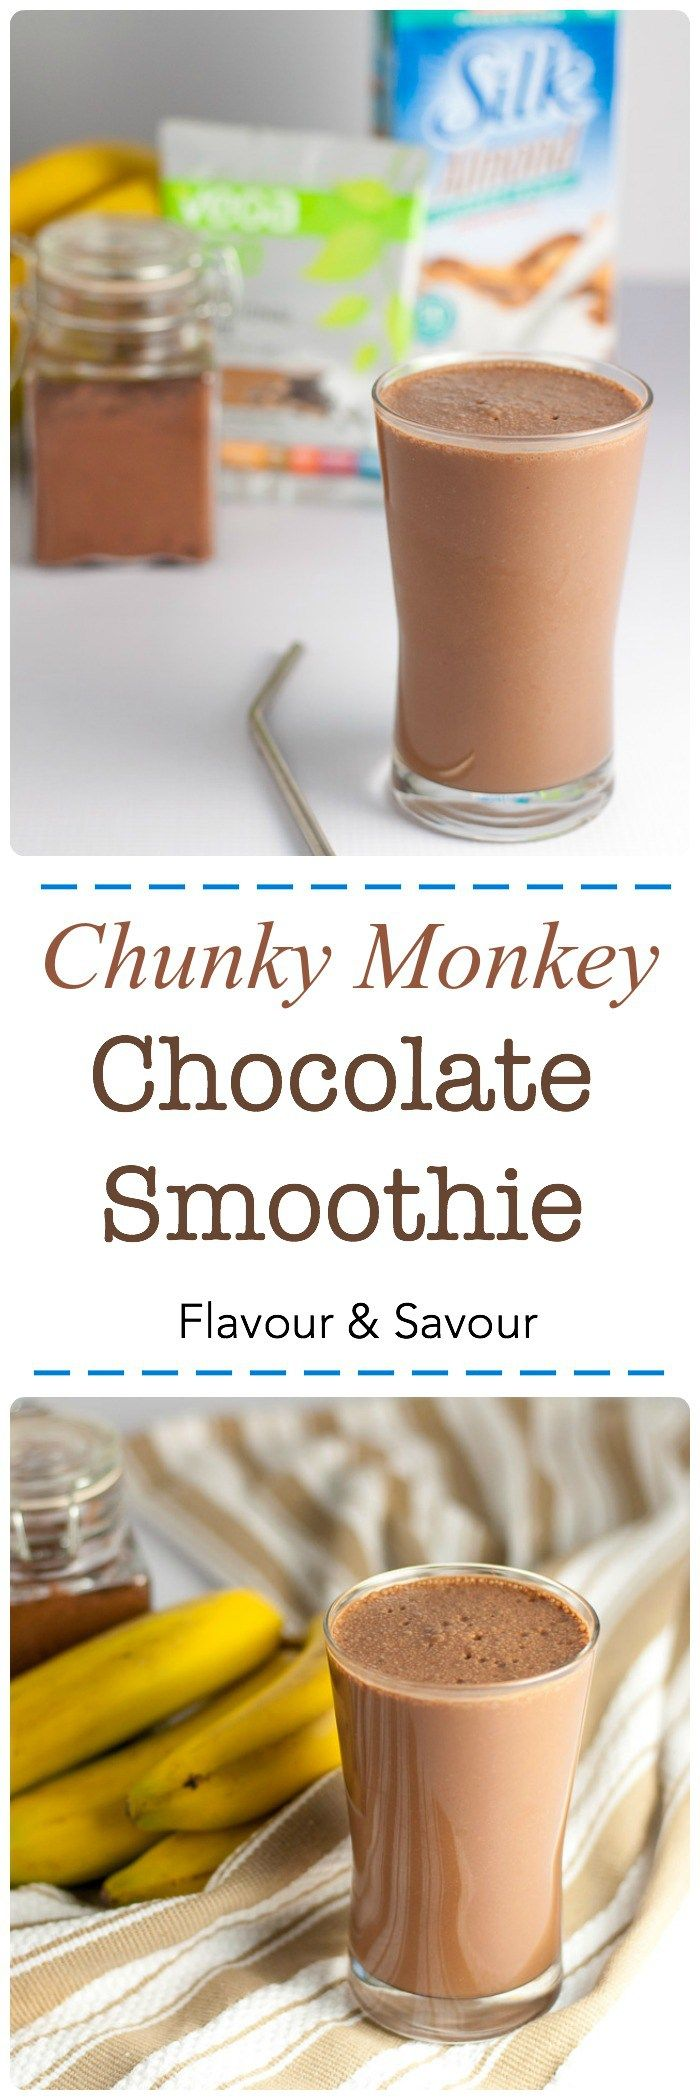 Chunky Monkey Chocolate Smoothie. All your favourite flavours in one healthy protein-packed smoothie, made with Vega One Nutritional Shake mix and Silk non-dairy milk. #SilkSummerofSmoothies #Vega #ad